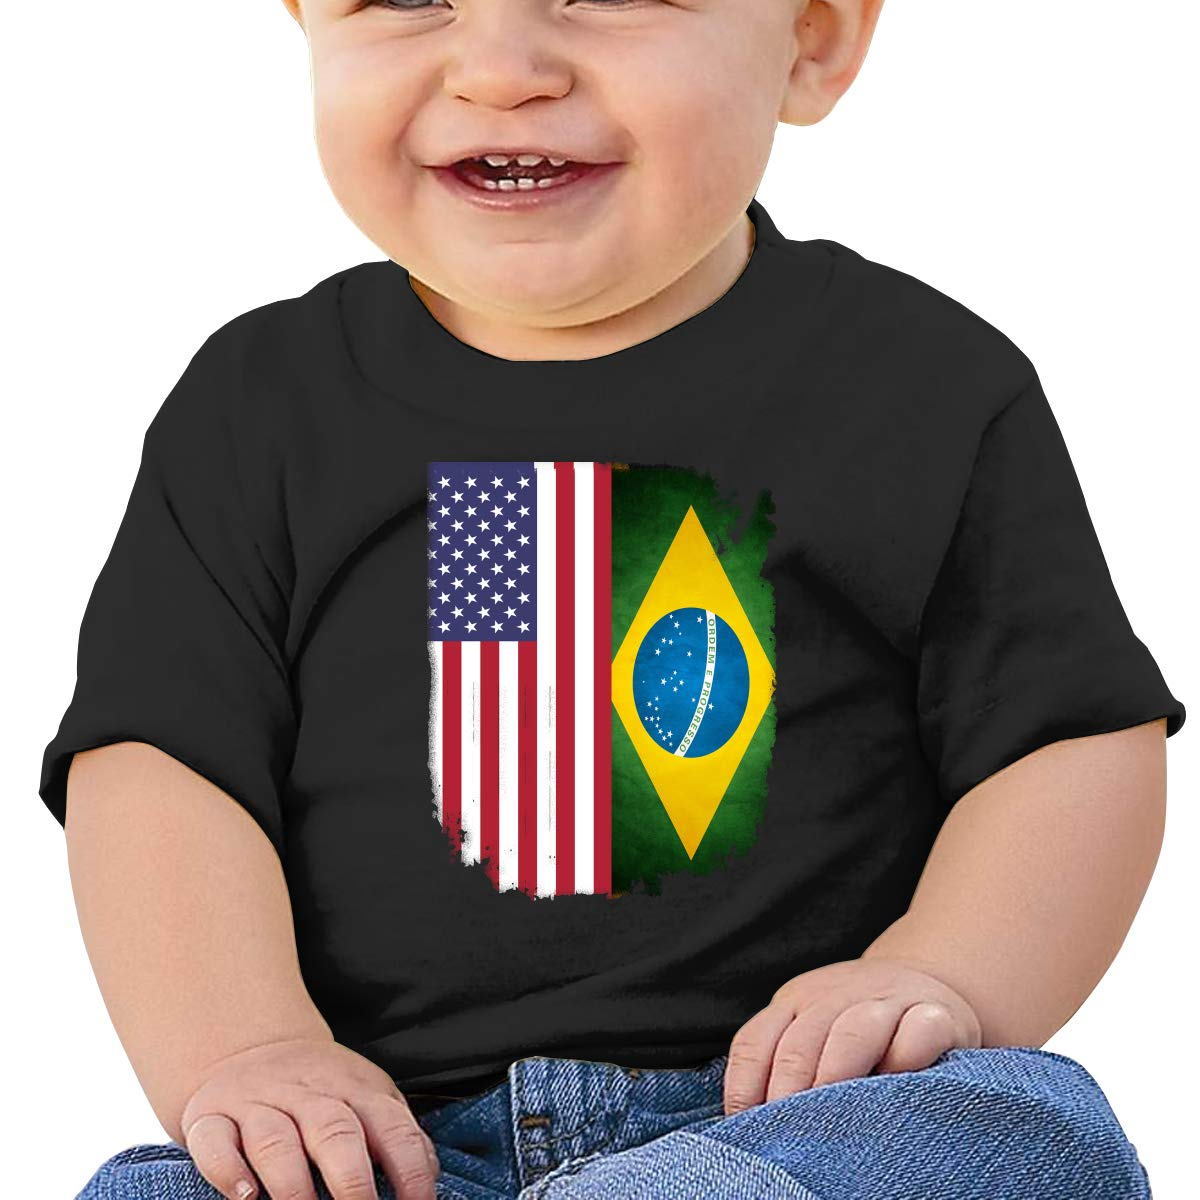 Brazil Flag of The United States Baby Boys Girls Short Sleeve Crew Neck T Shirts 6-18 Month Tops